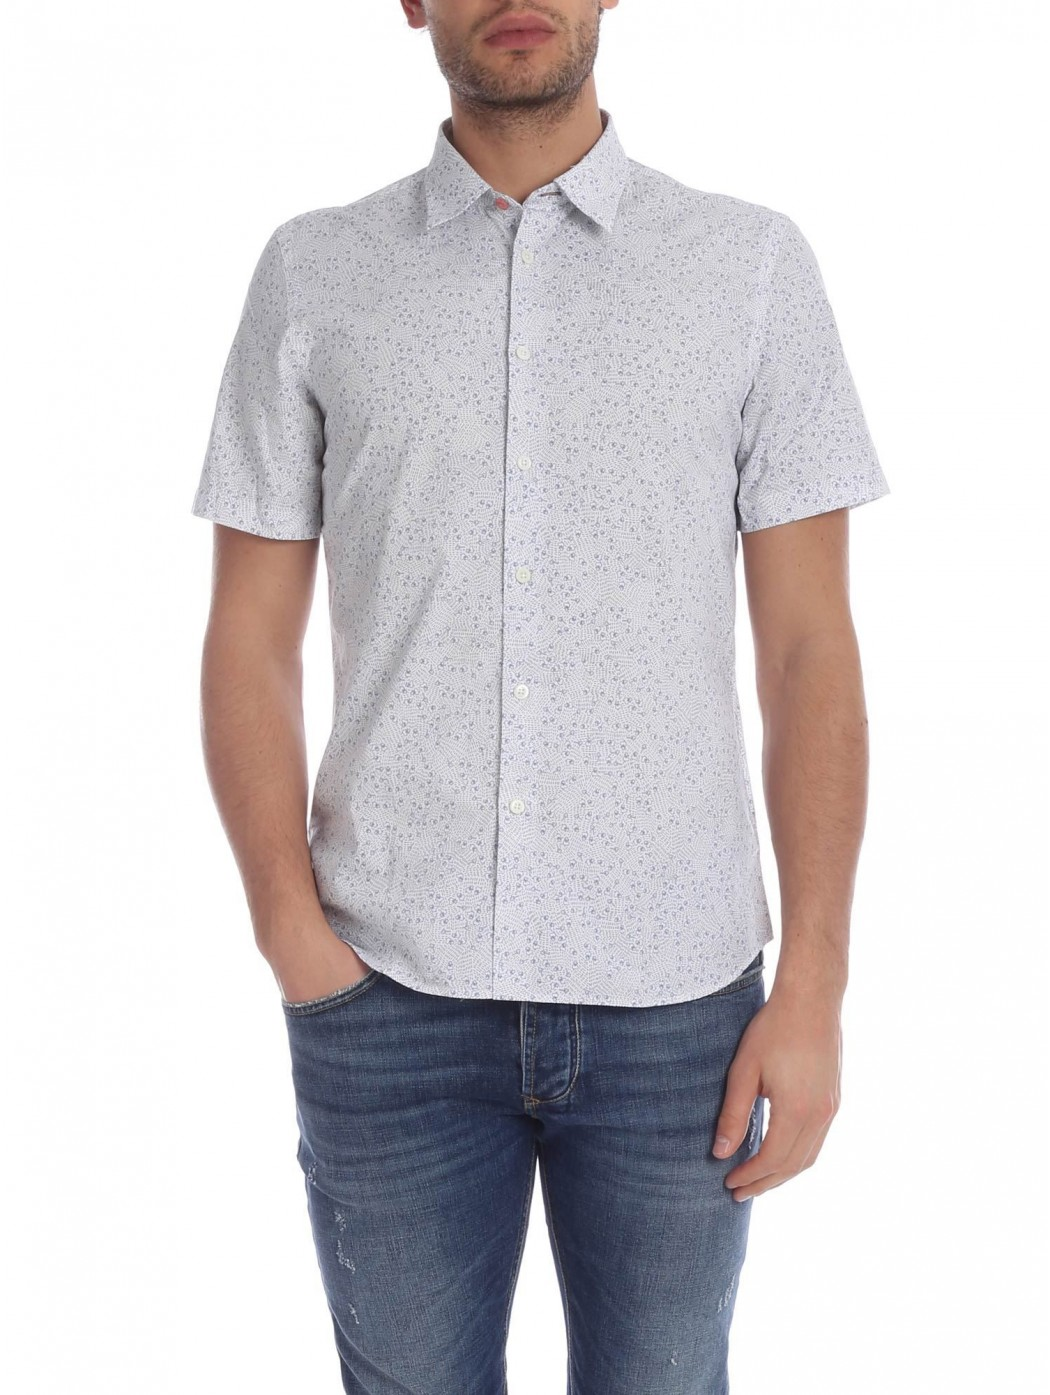 PAUL SMITH M2R 619P 01 T-SHIRT